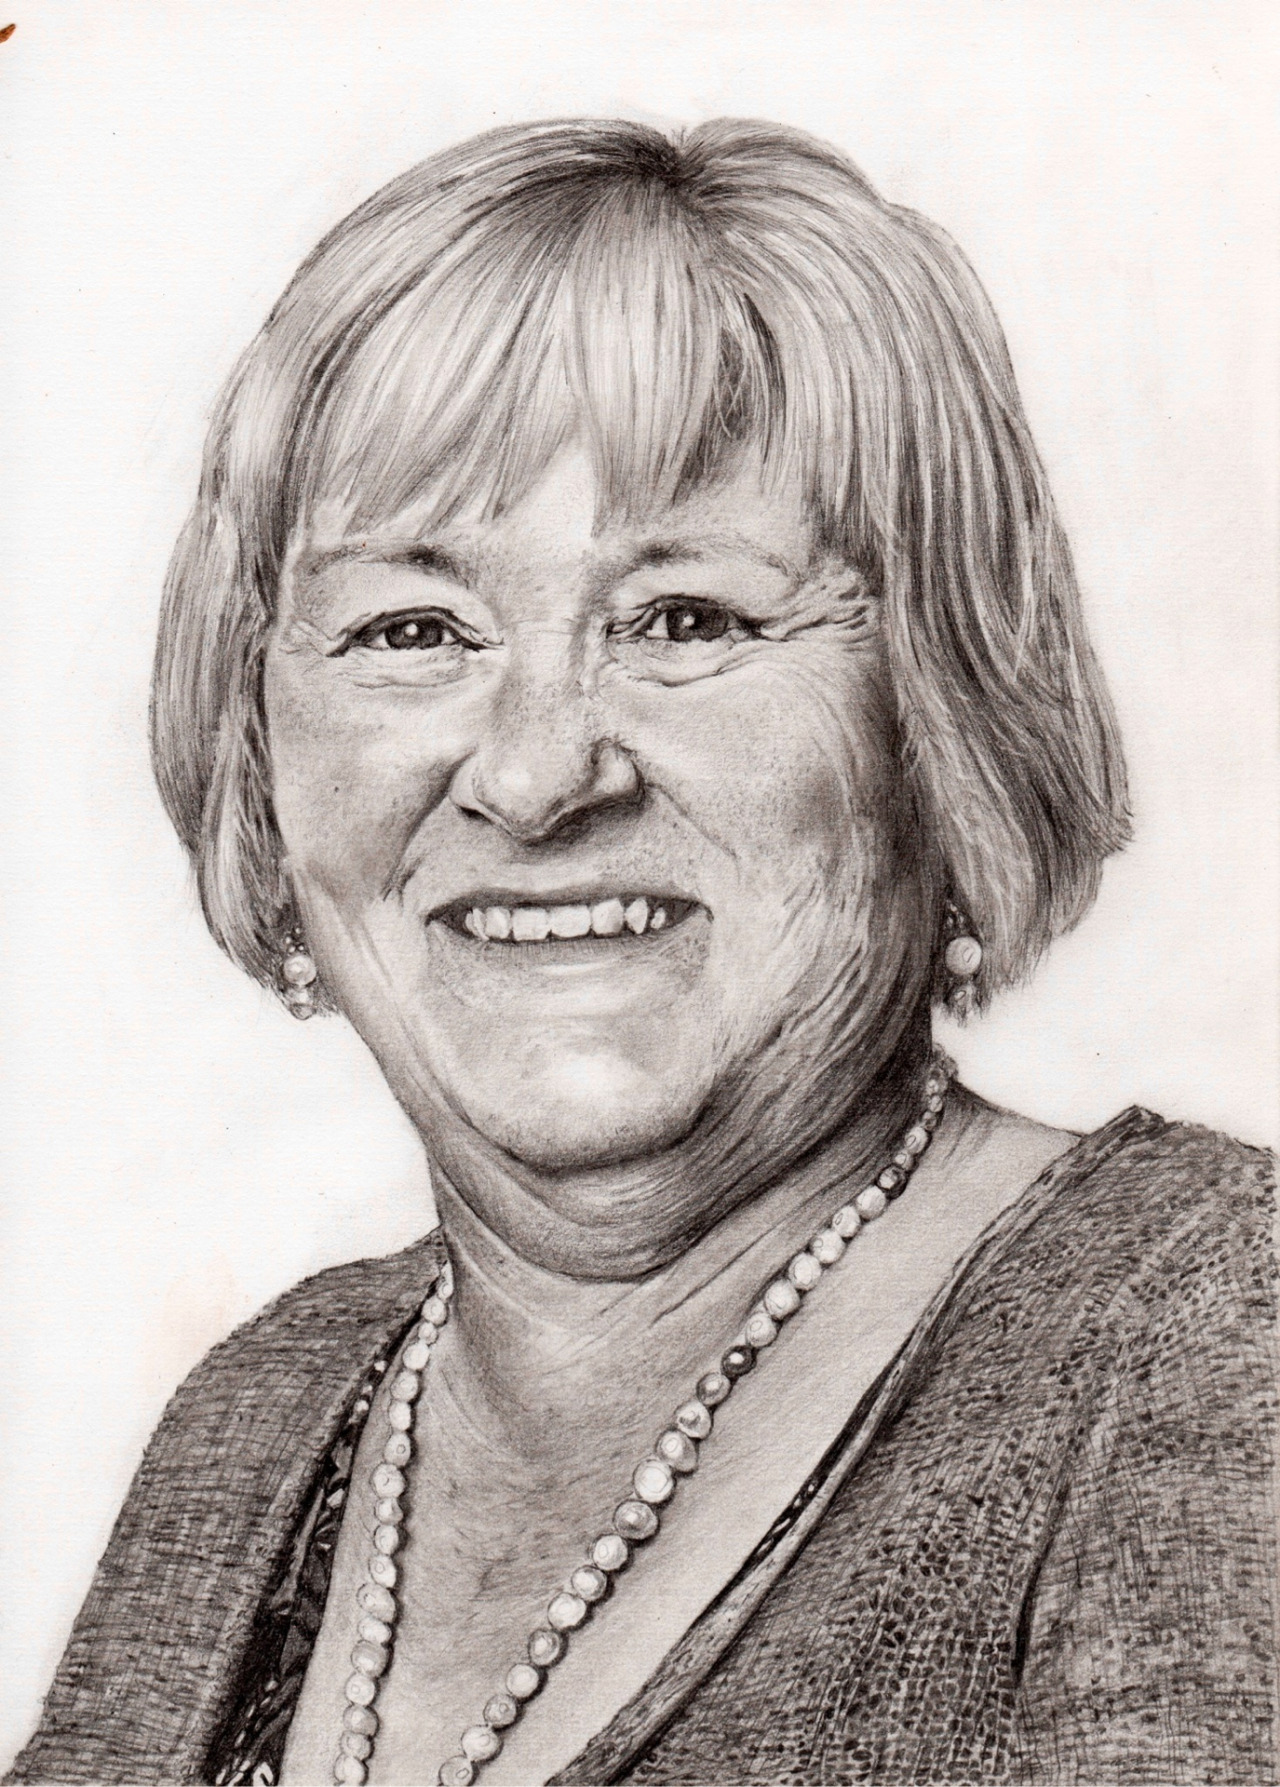 This is a commissioned portrait I did for someone using pencil